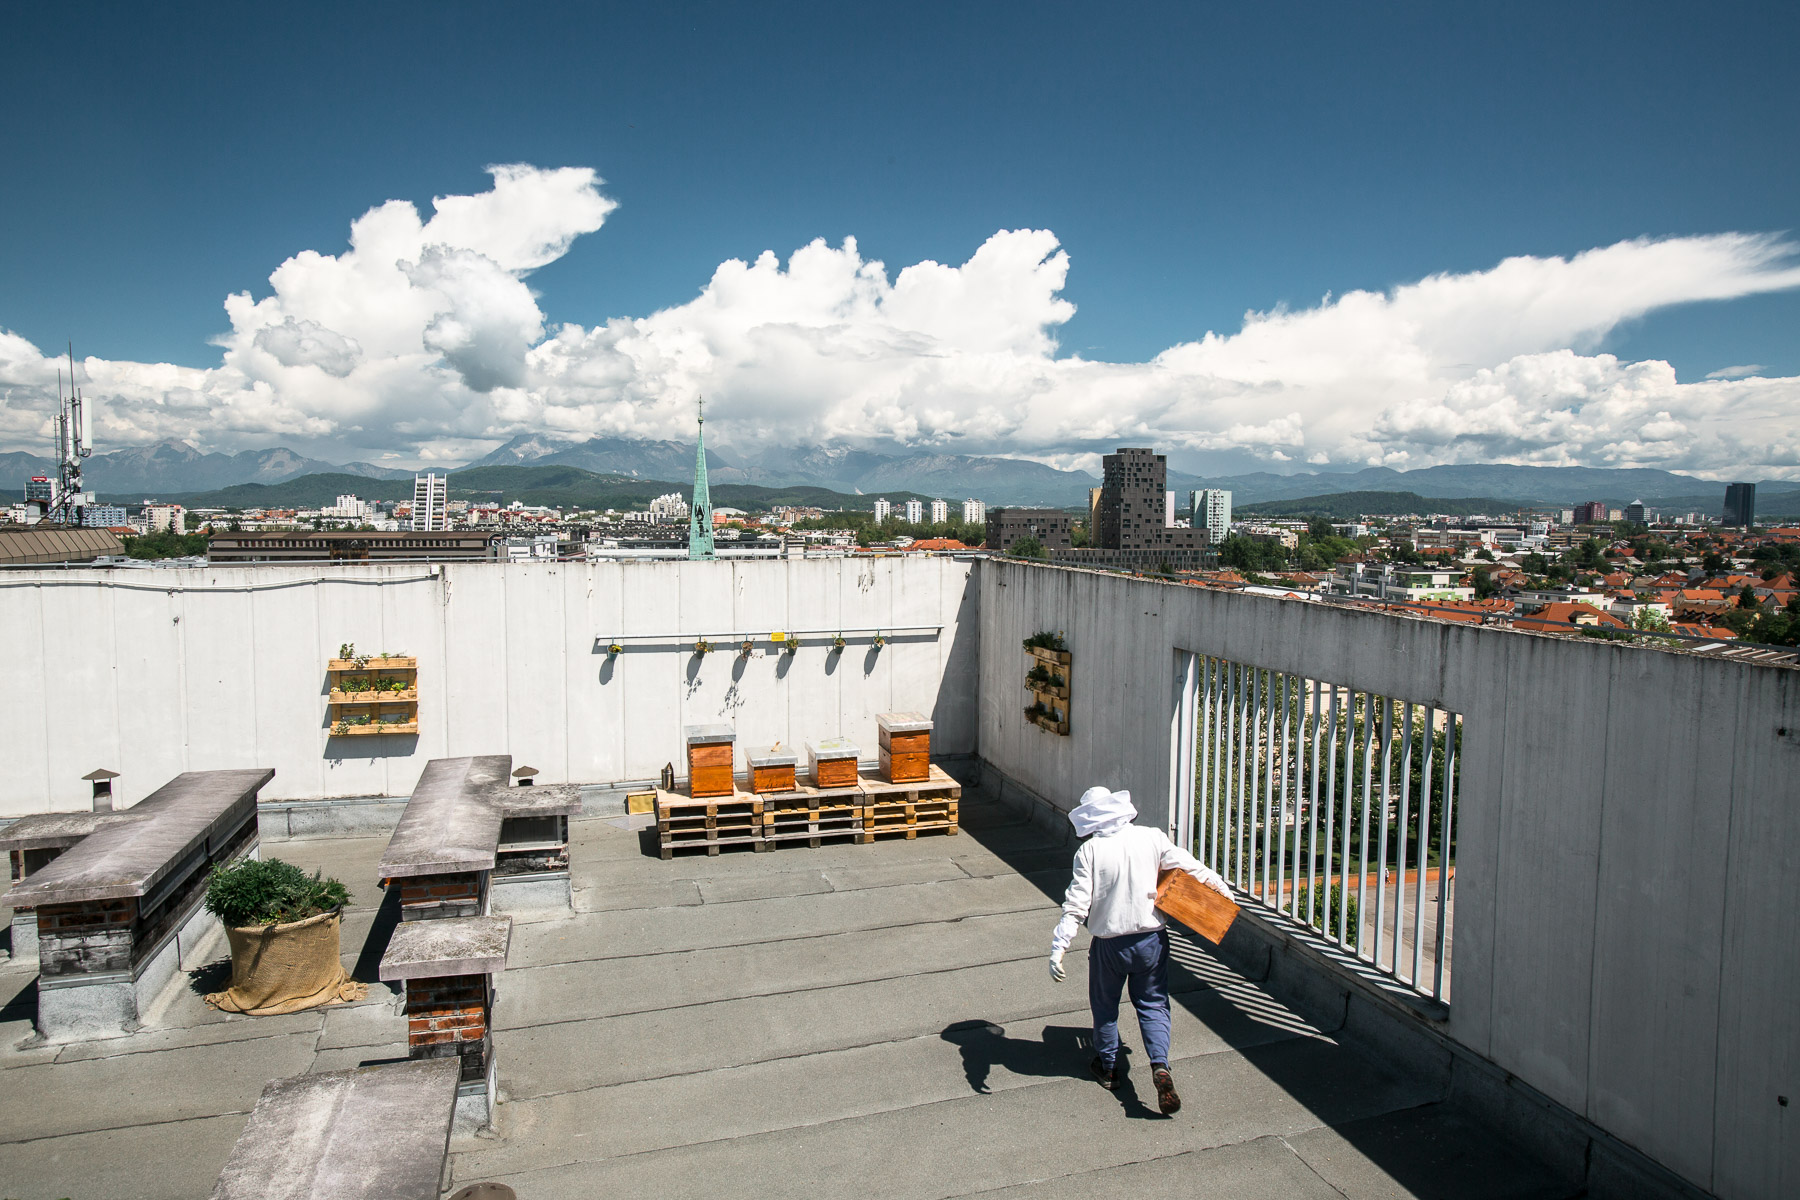 Trušnovec arrives to divide a full beehive on the roof of 13-storey Hotel Park in the city centre of Ljubljana, the highest dwelling of bees in the city.